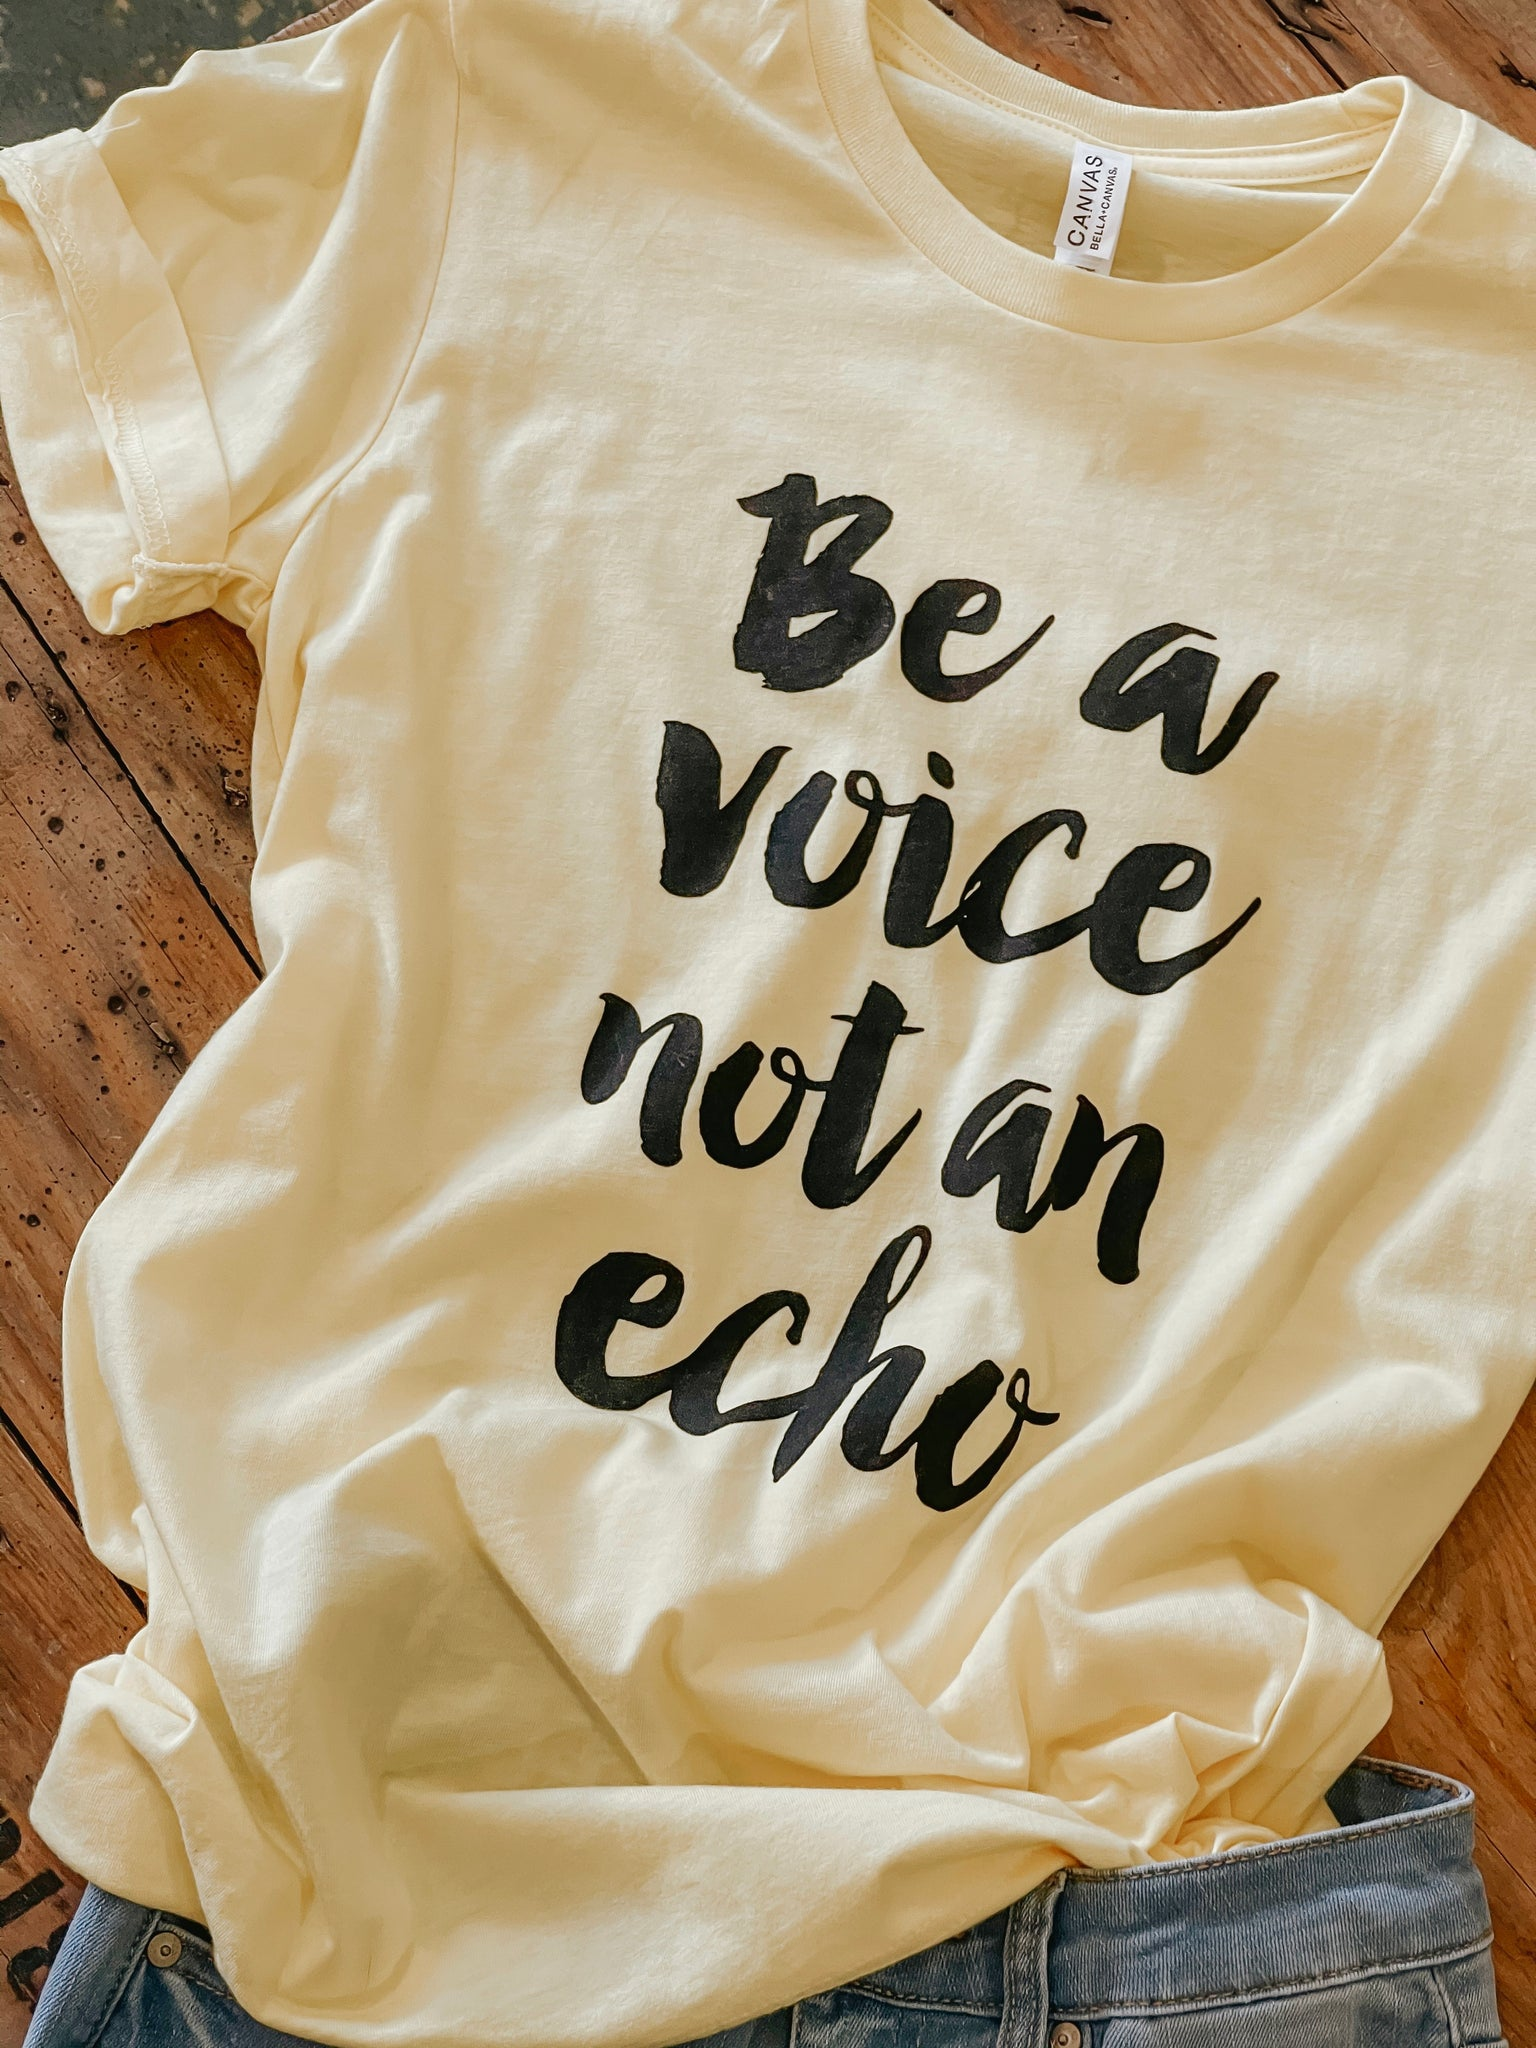 Be a Voice - Girl Power - Tshirt  - Bright Yellow